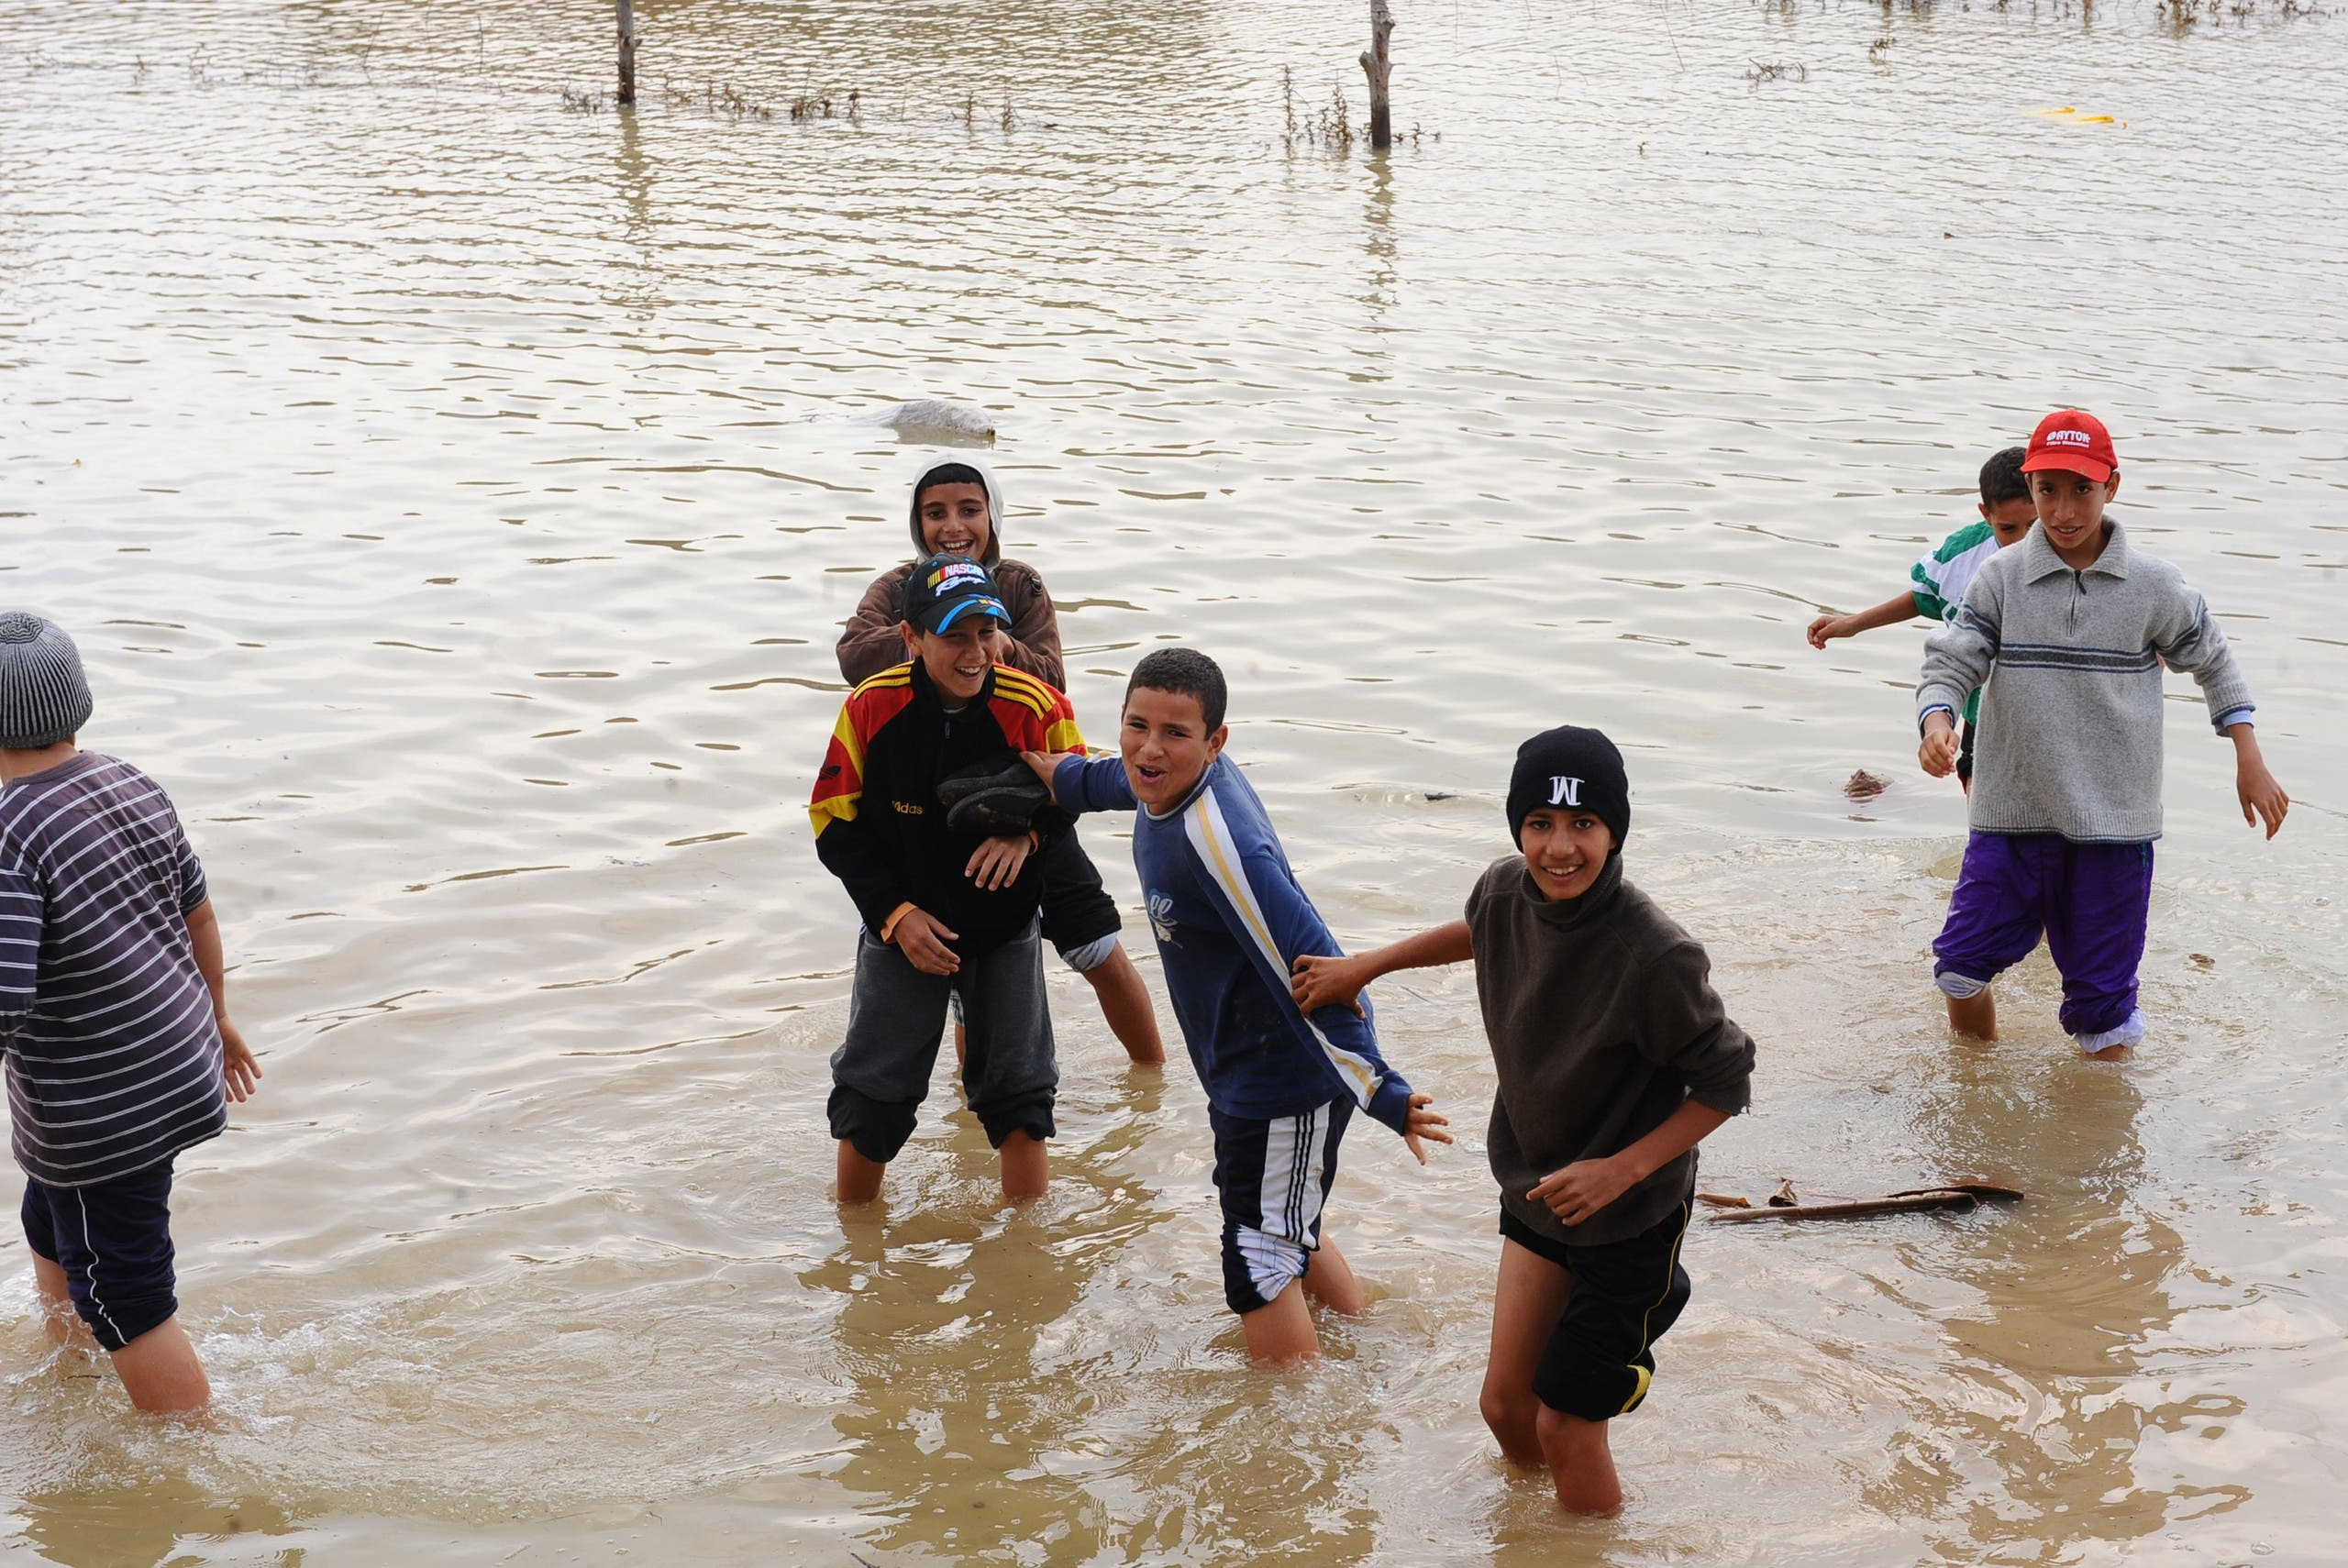 Kids play in floodwater in the northern Tunisia village of Houcine invaded with floodwater on November 2, 2011 near Majaz al Bab in Beja's province. (AFP)